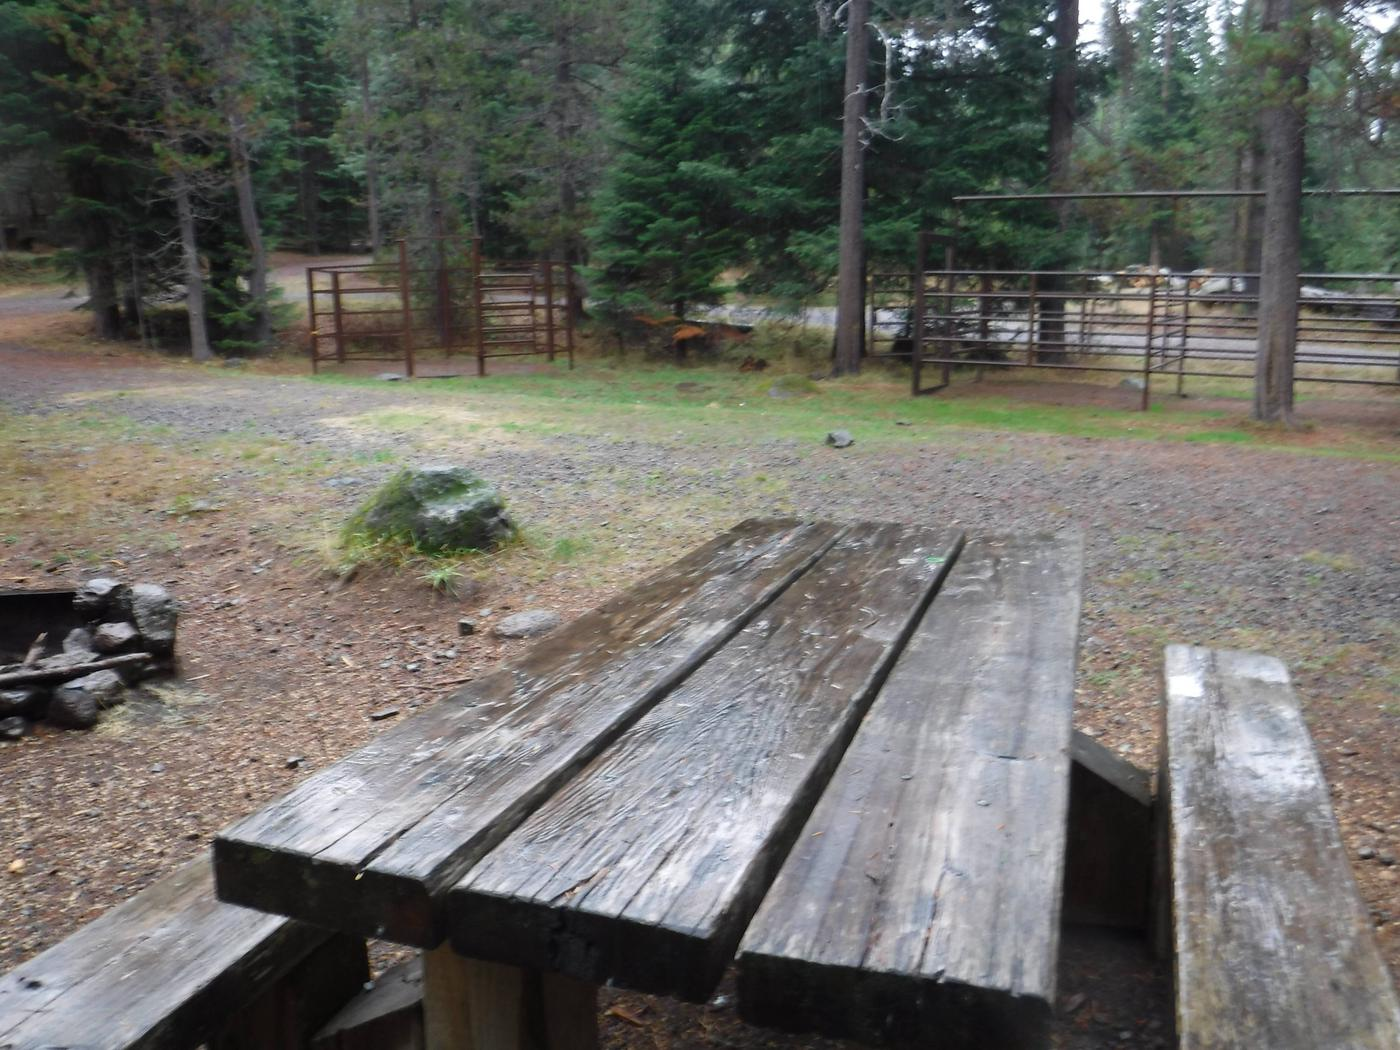 Flat campsite with one picnic table, fire ring and corrals.B3